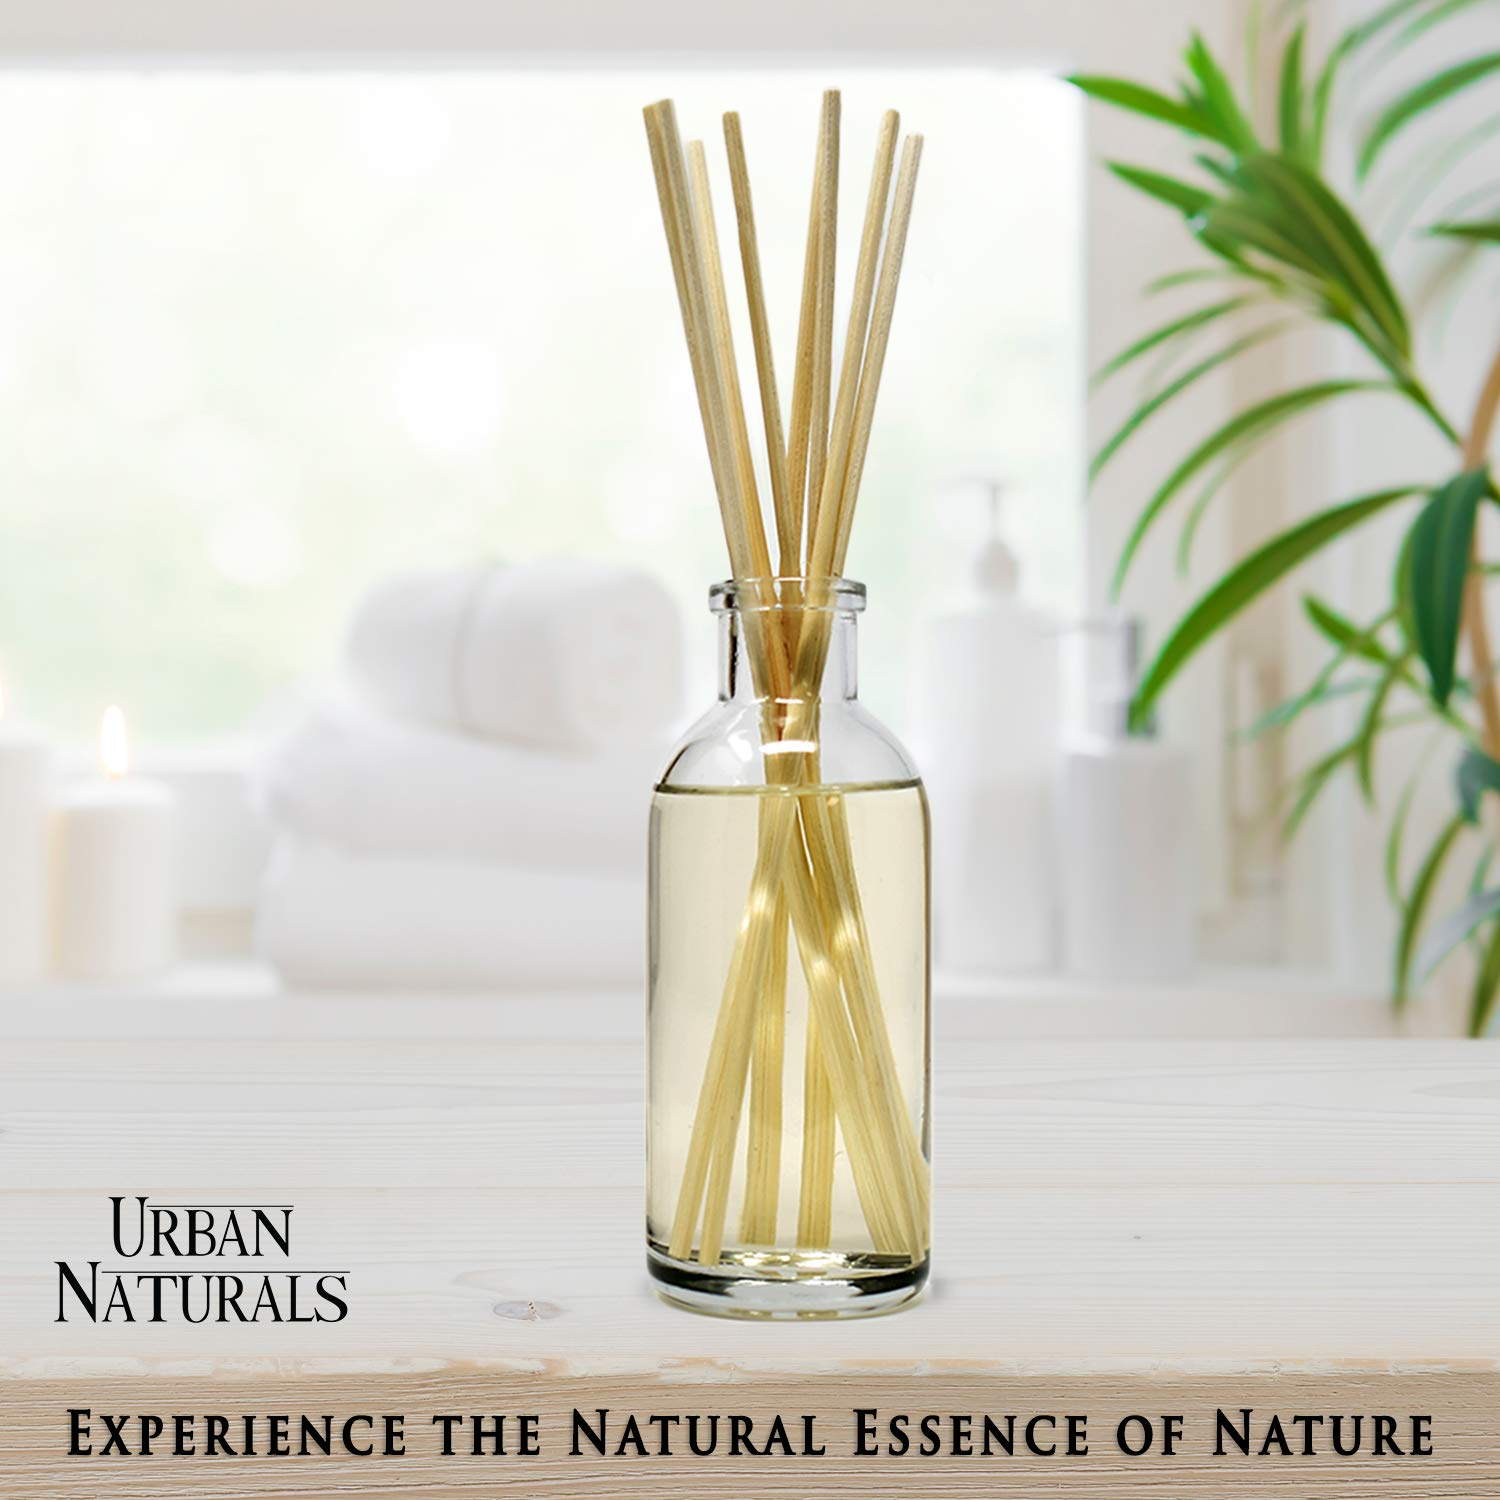 Urban Naturals Stress Relief Eucalyptus Spearmint Reed Diffuser Oil Refill | Fill Your own DIY Diffuser Bottle! Includes Replacement Reed Sticks by Urban Naturals (Image #7)